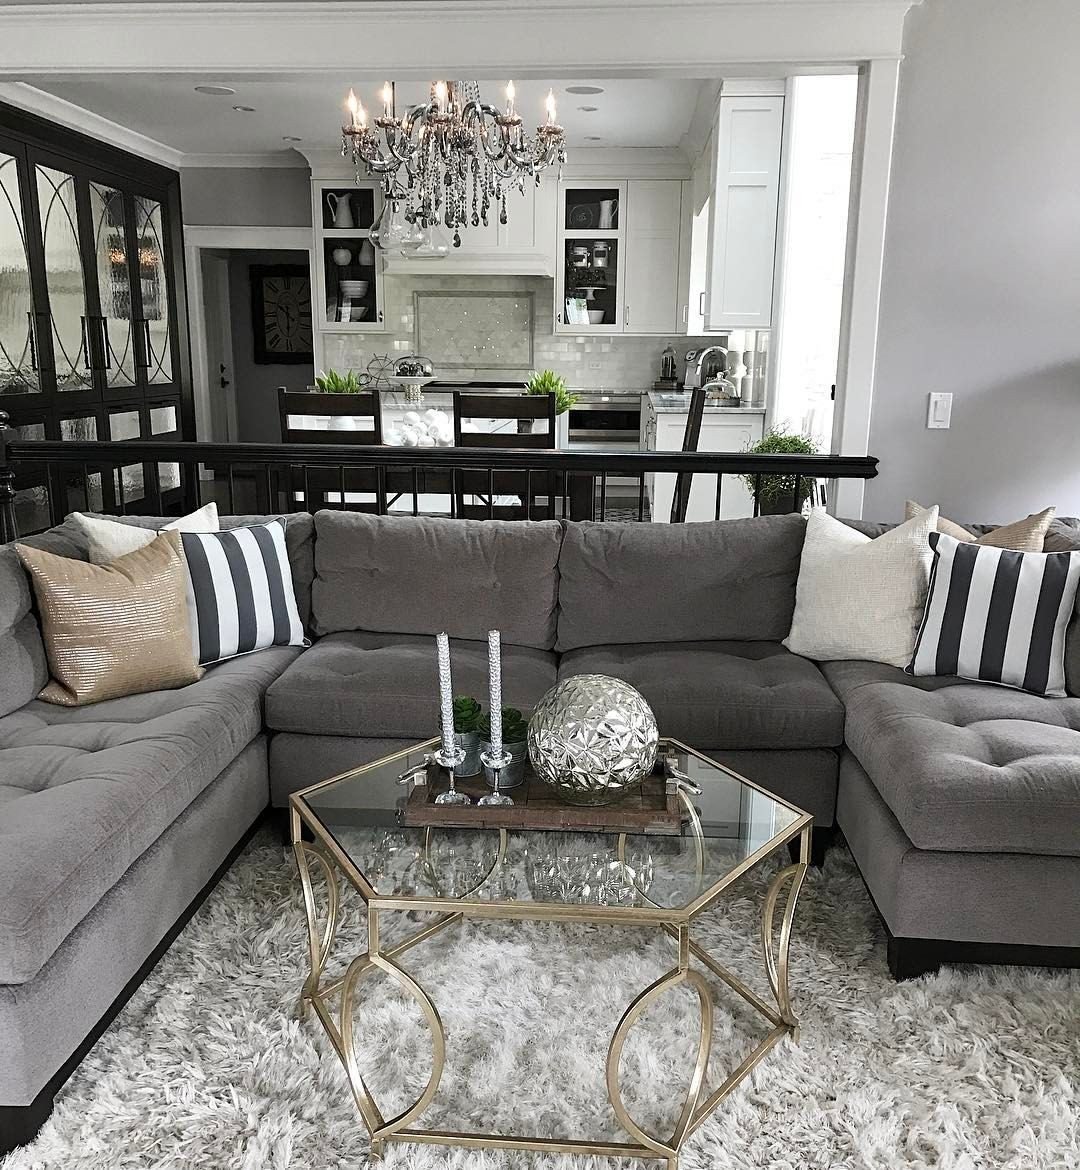 Gray Living Room Decor Ideas Change Up the Gray Couch with and Chic Black and White